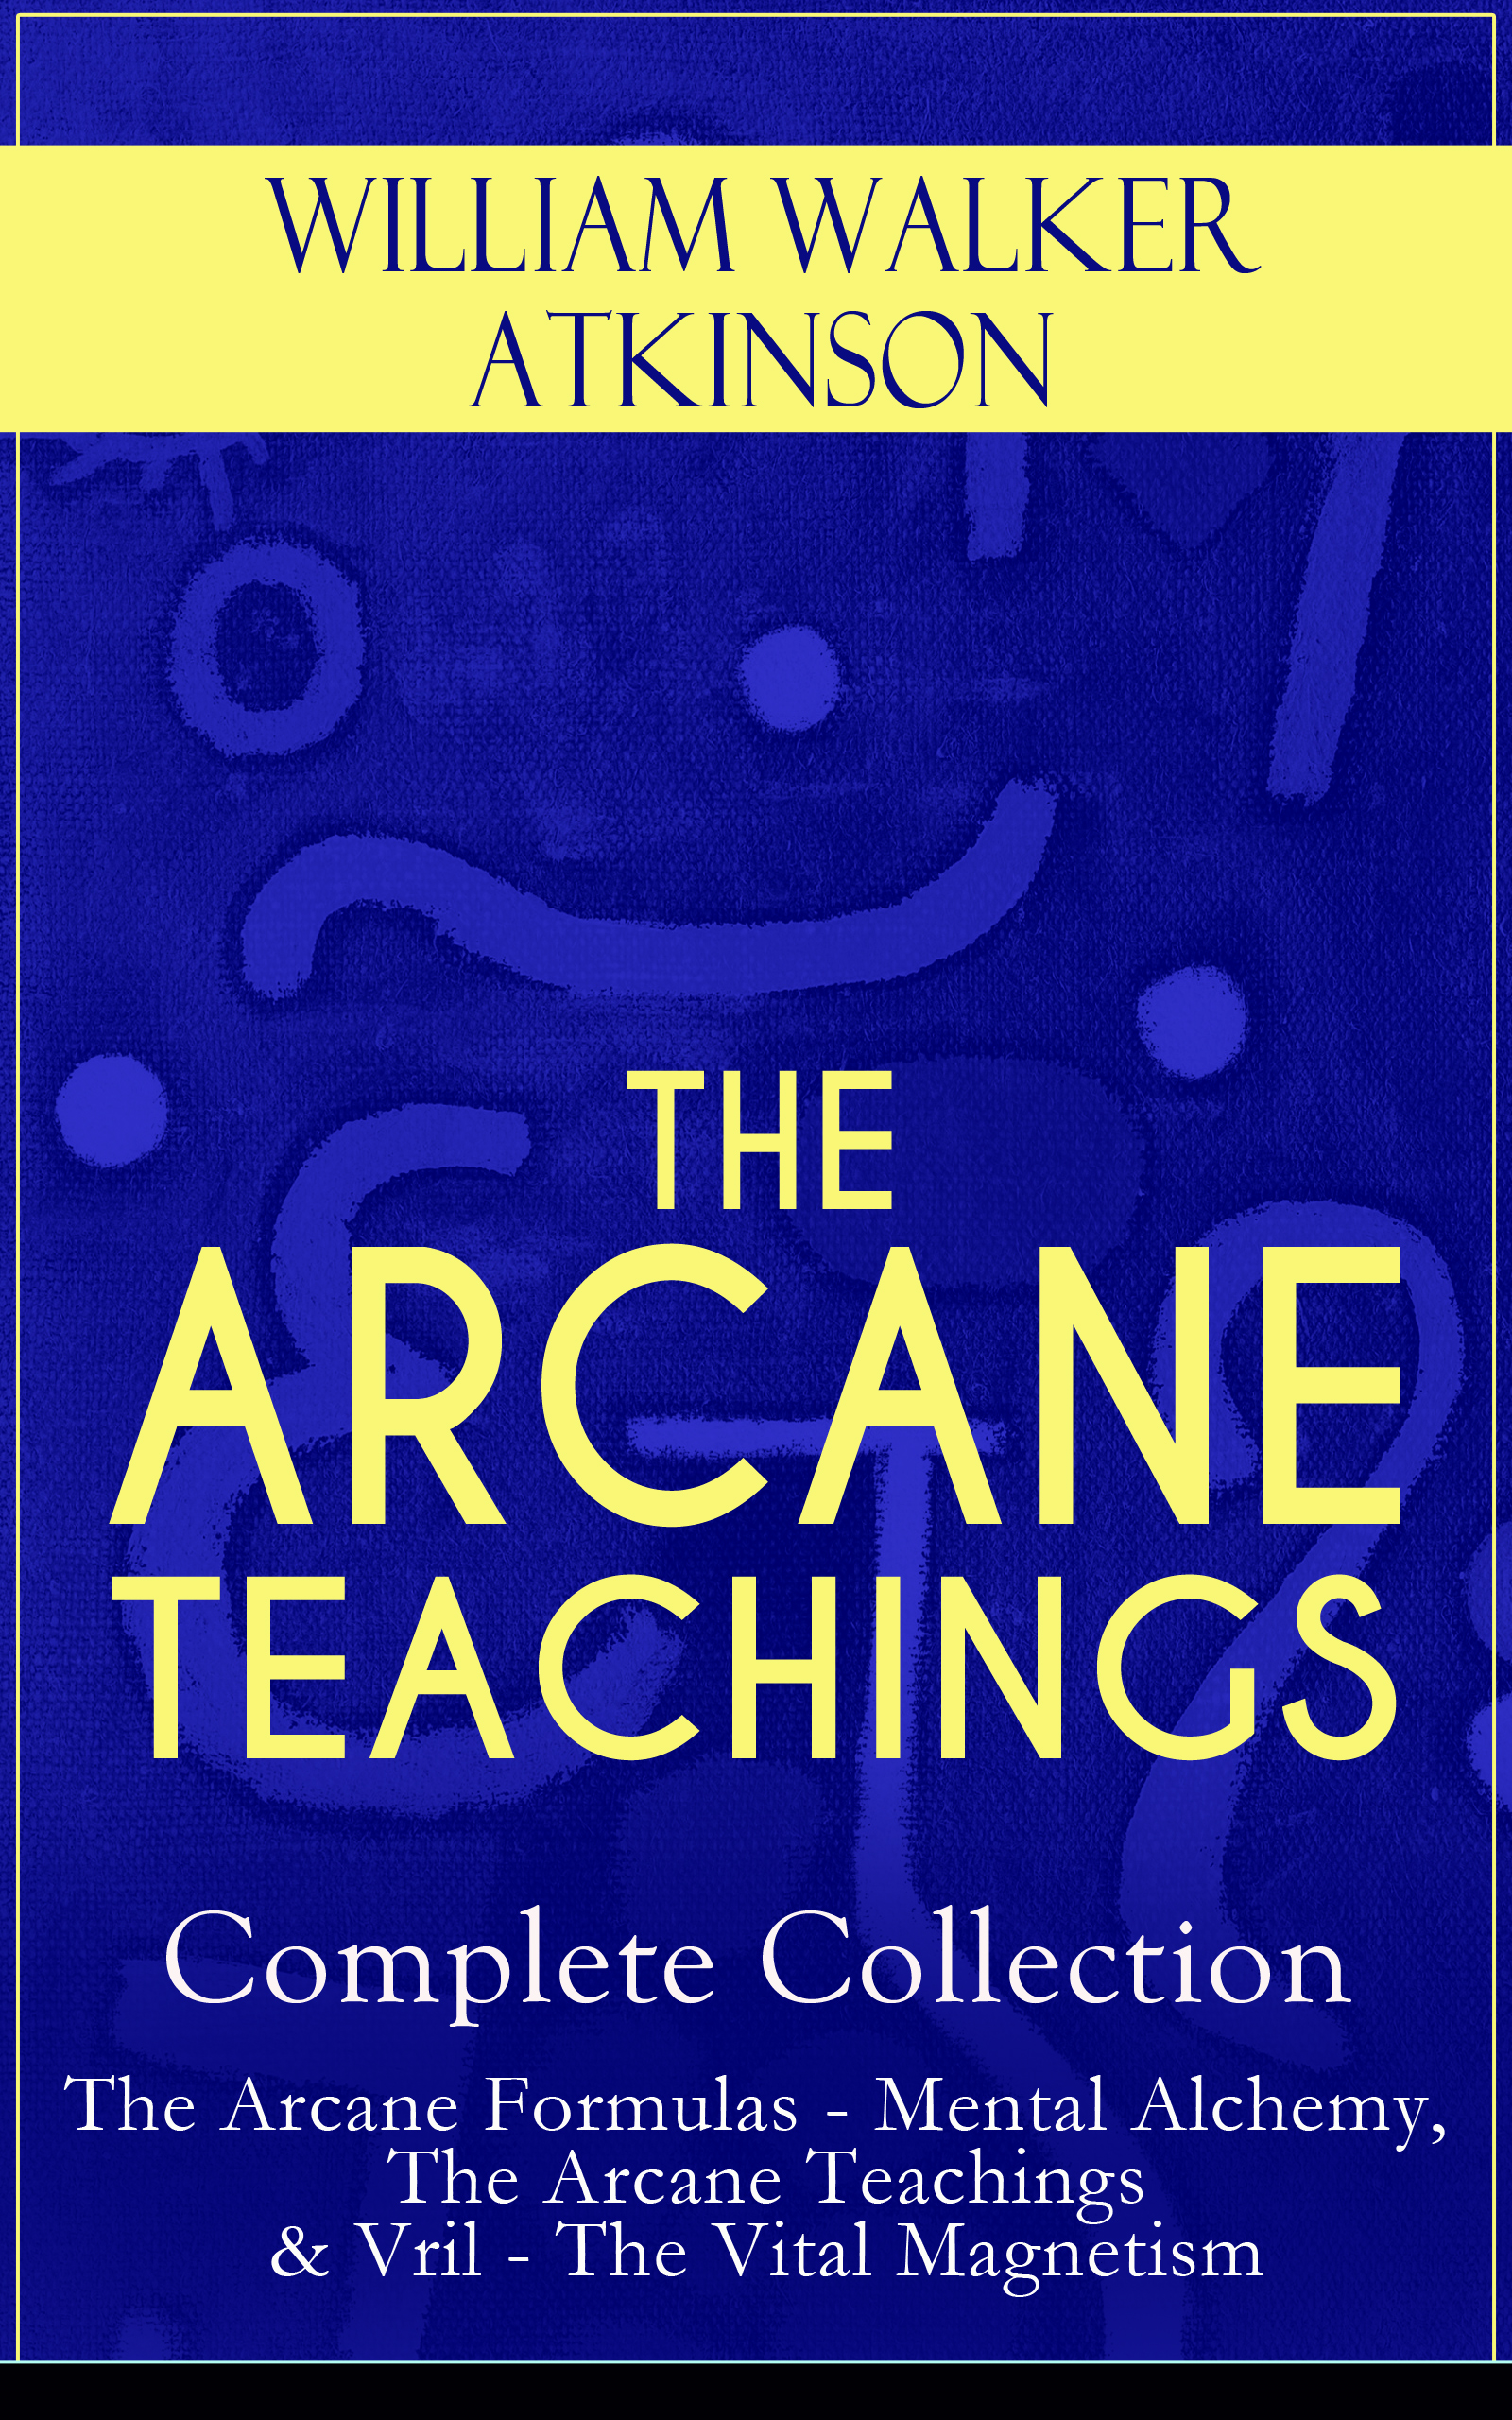 William Walker Atkinson THE ARCANE TEACHINGS - Complete Collection: The Arcane Formulas - Mental Alchemy, The Arcane Teachings & Vril - The Vital Magnetism teachings from the american earth – indian religion